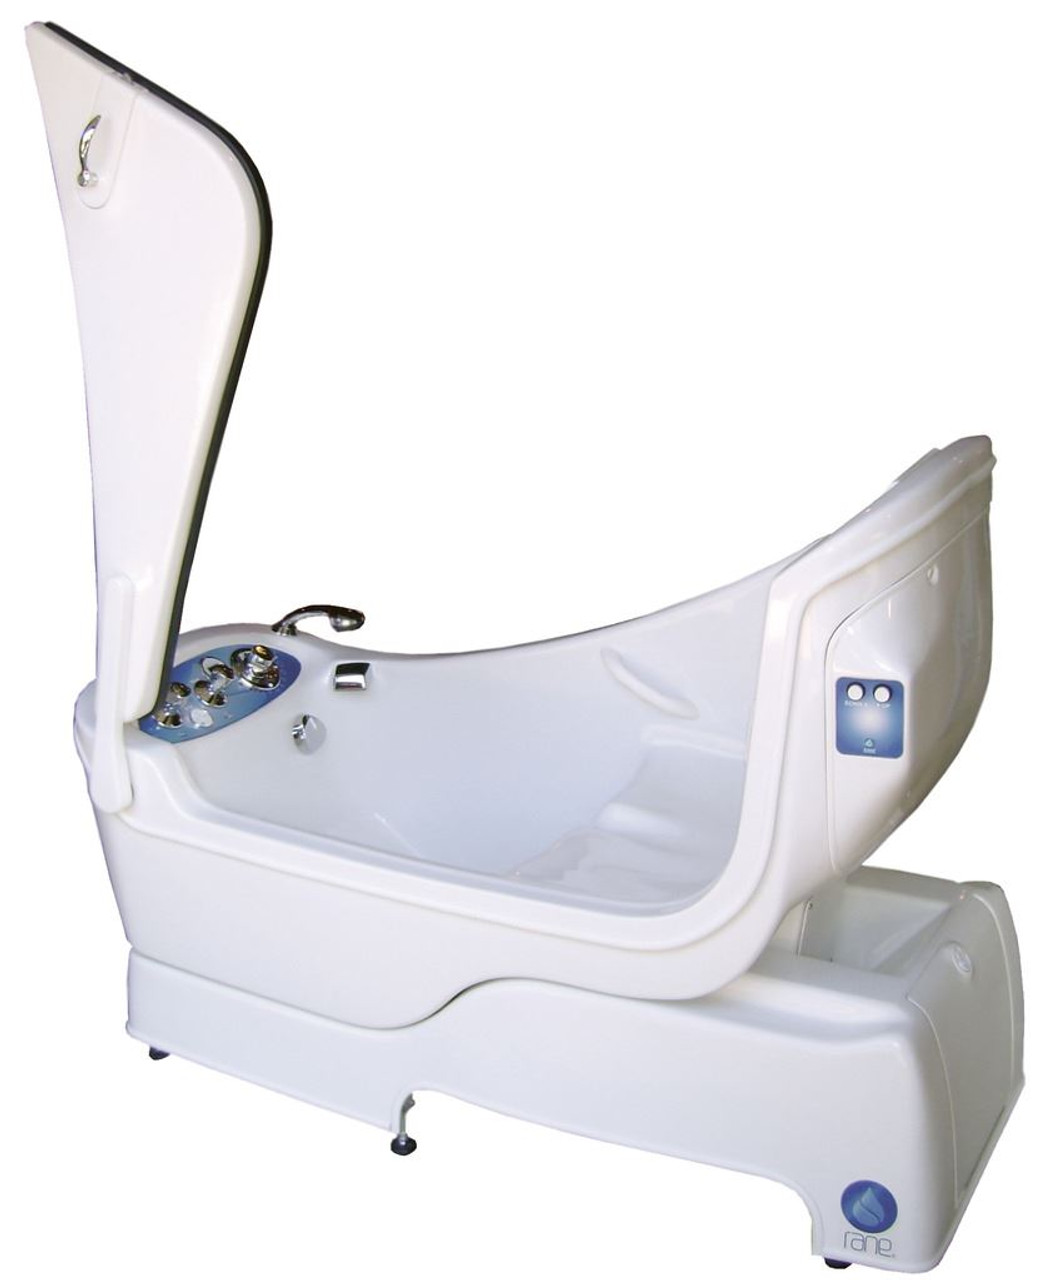 Atlantic by Rane Bathing Systems | Therapy Room Bathtub